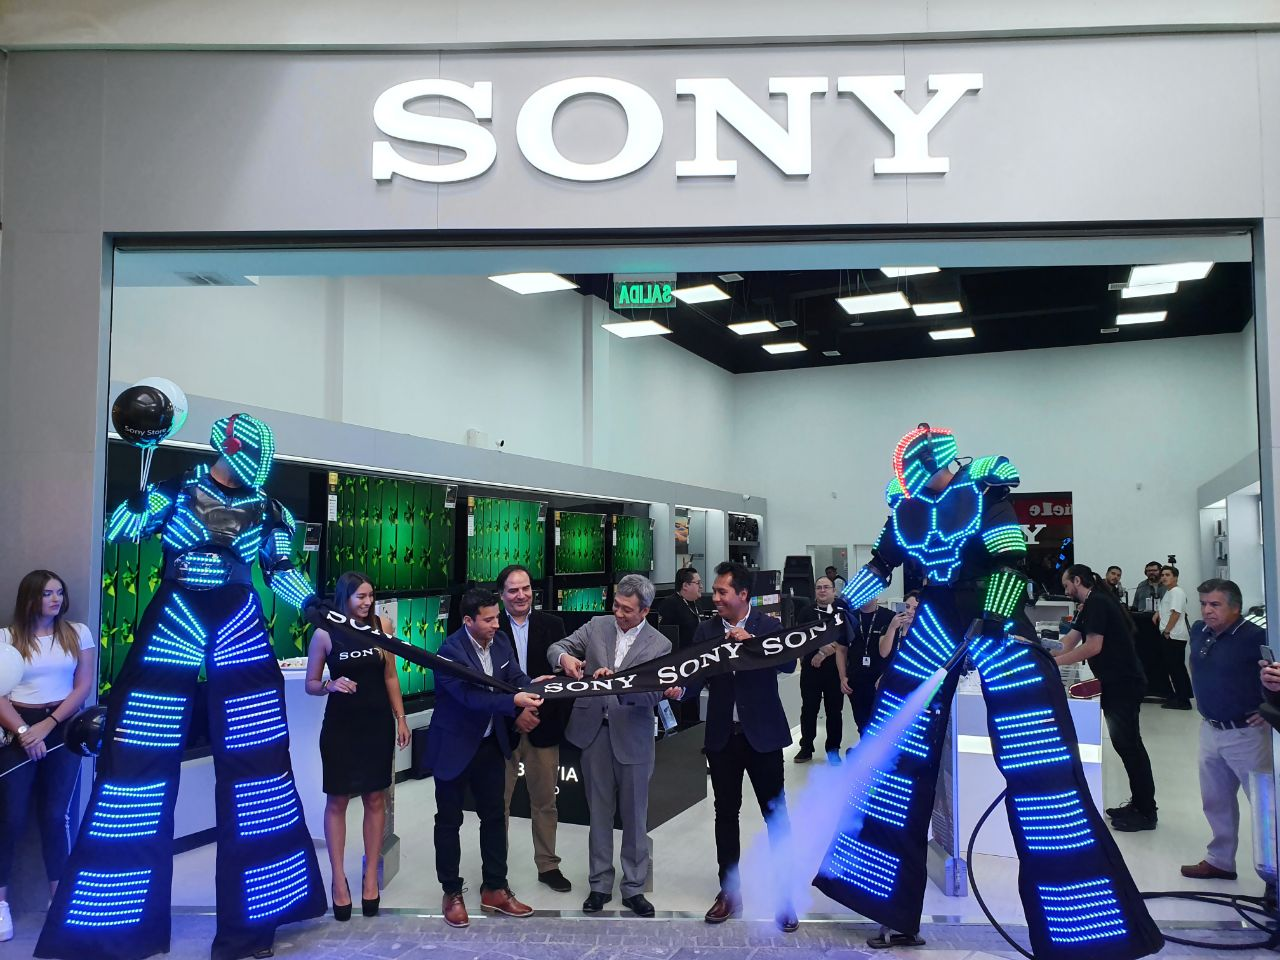 Sony Chile opens two new stores in Parque Arauco and Arauco Maipú 5